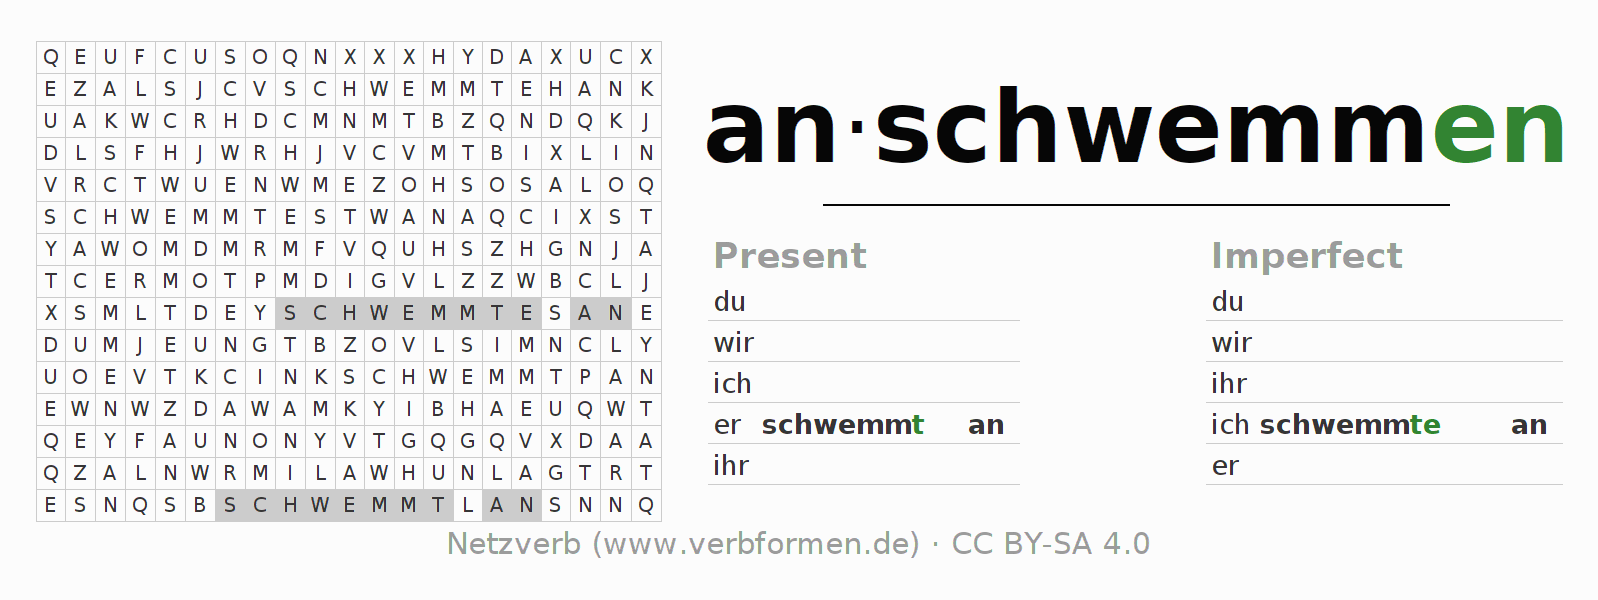 Word search puzzle for the conjugation of the verb anschwemmen